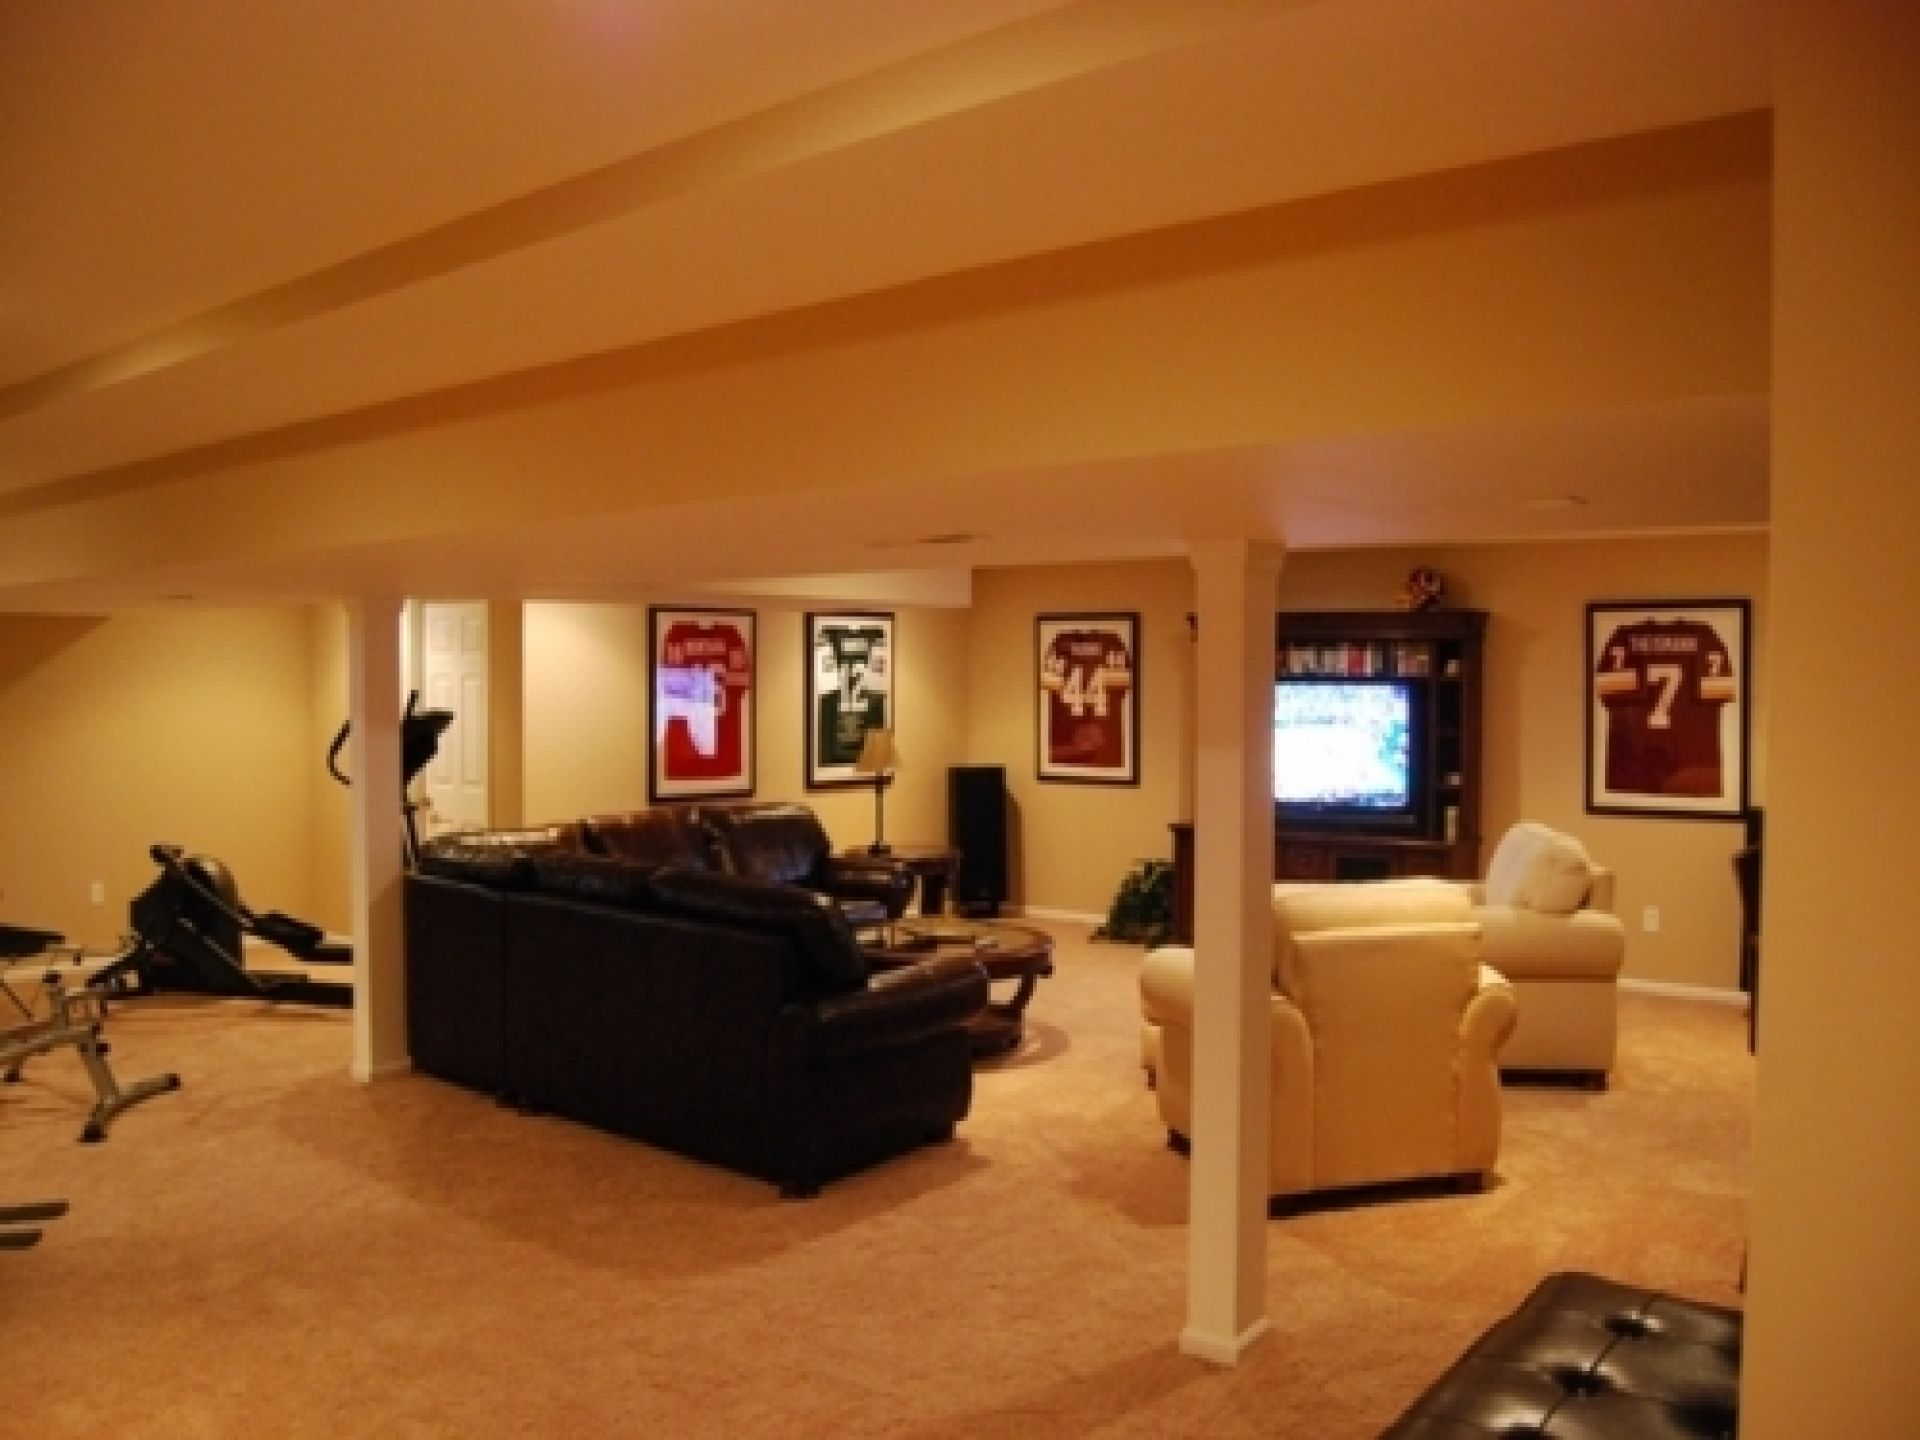 Basement Finishing Ideas On A Budget basement ideas on a budget | smalltowndjs | morgan home